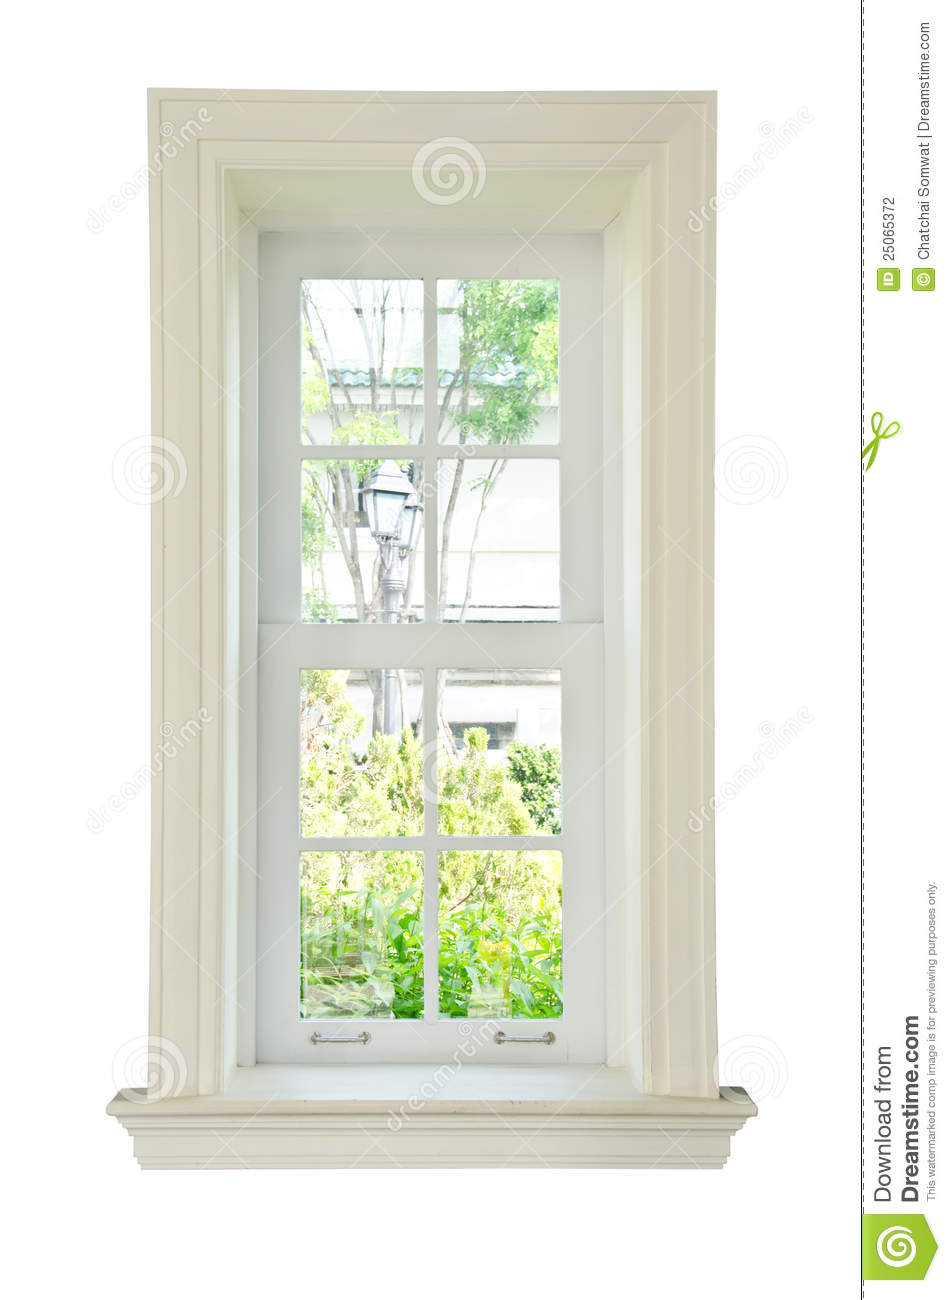 Wood window white frame stock photo. Image of glazed - 25065372